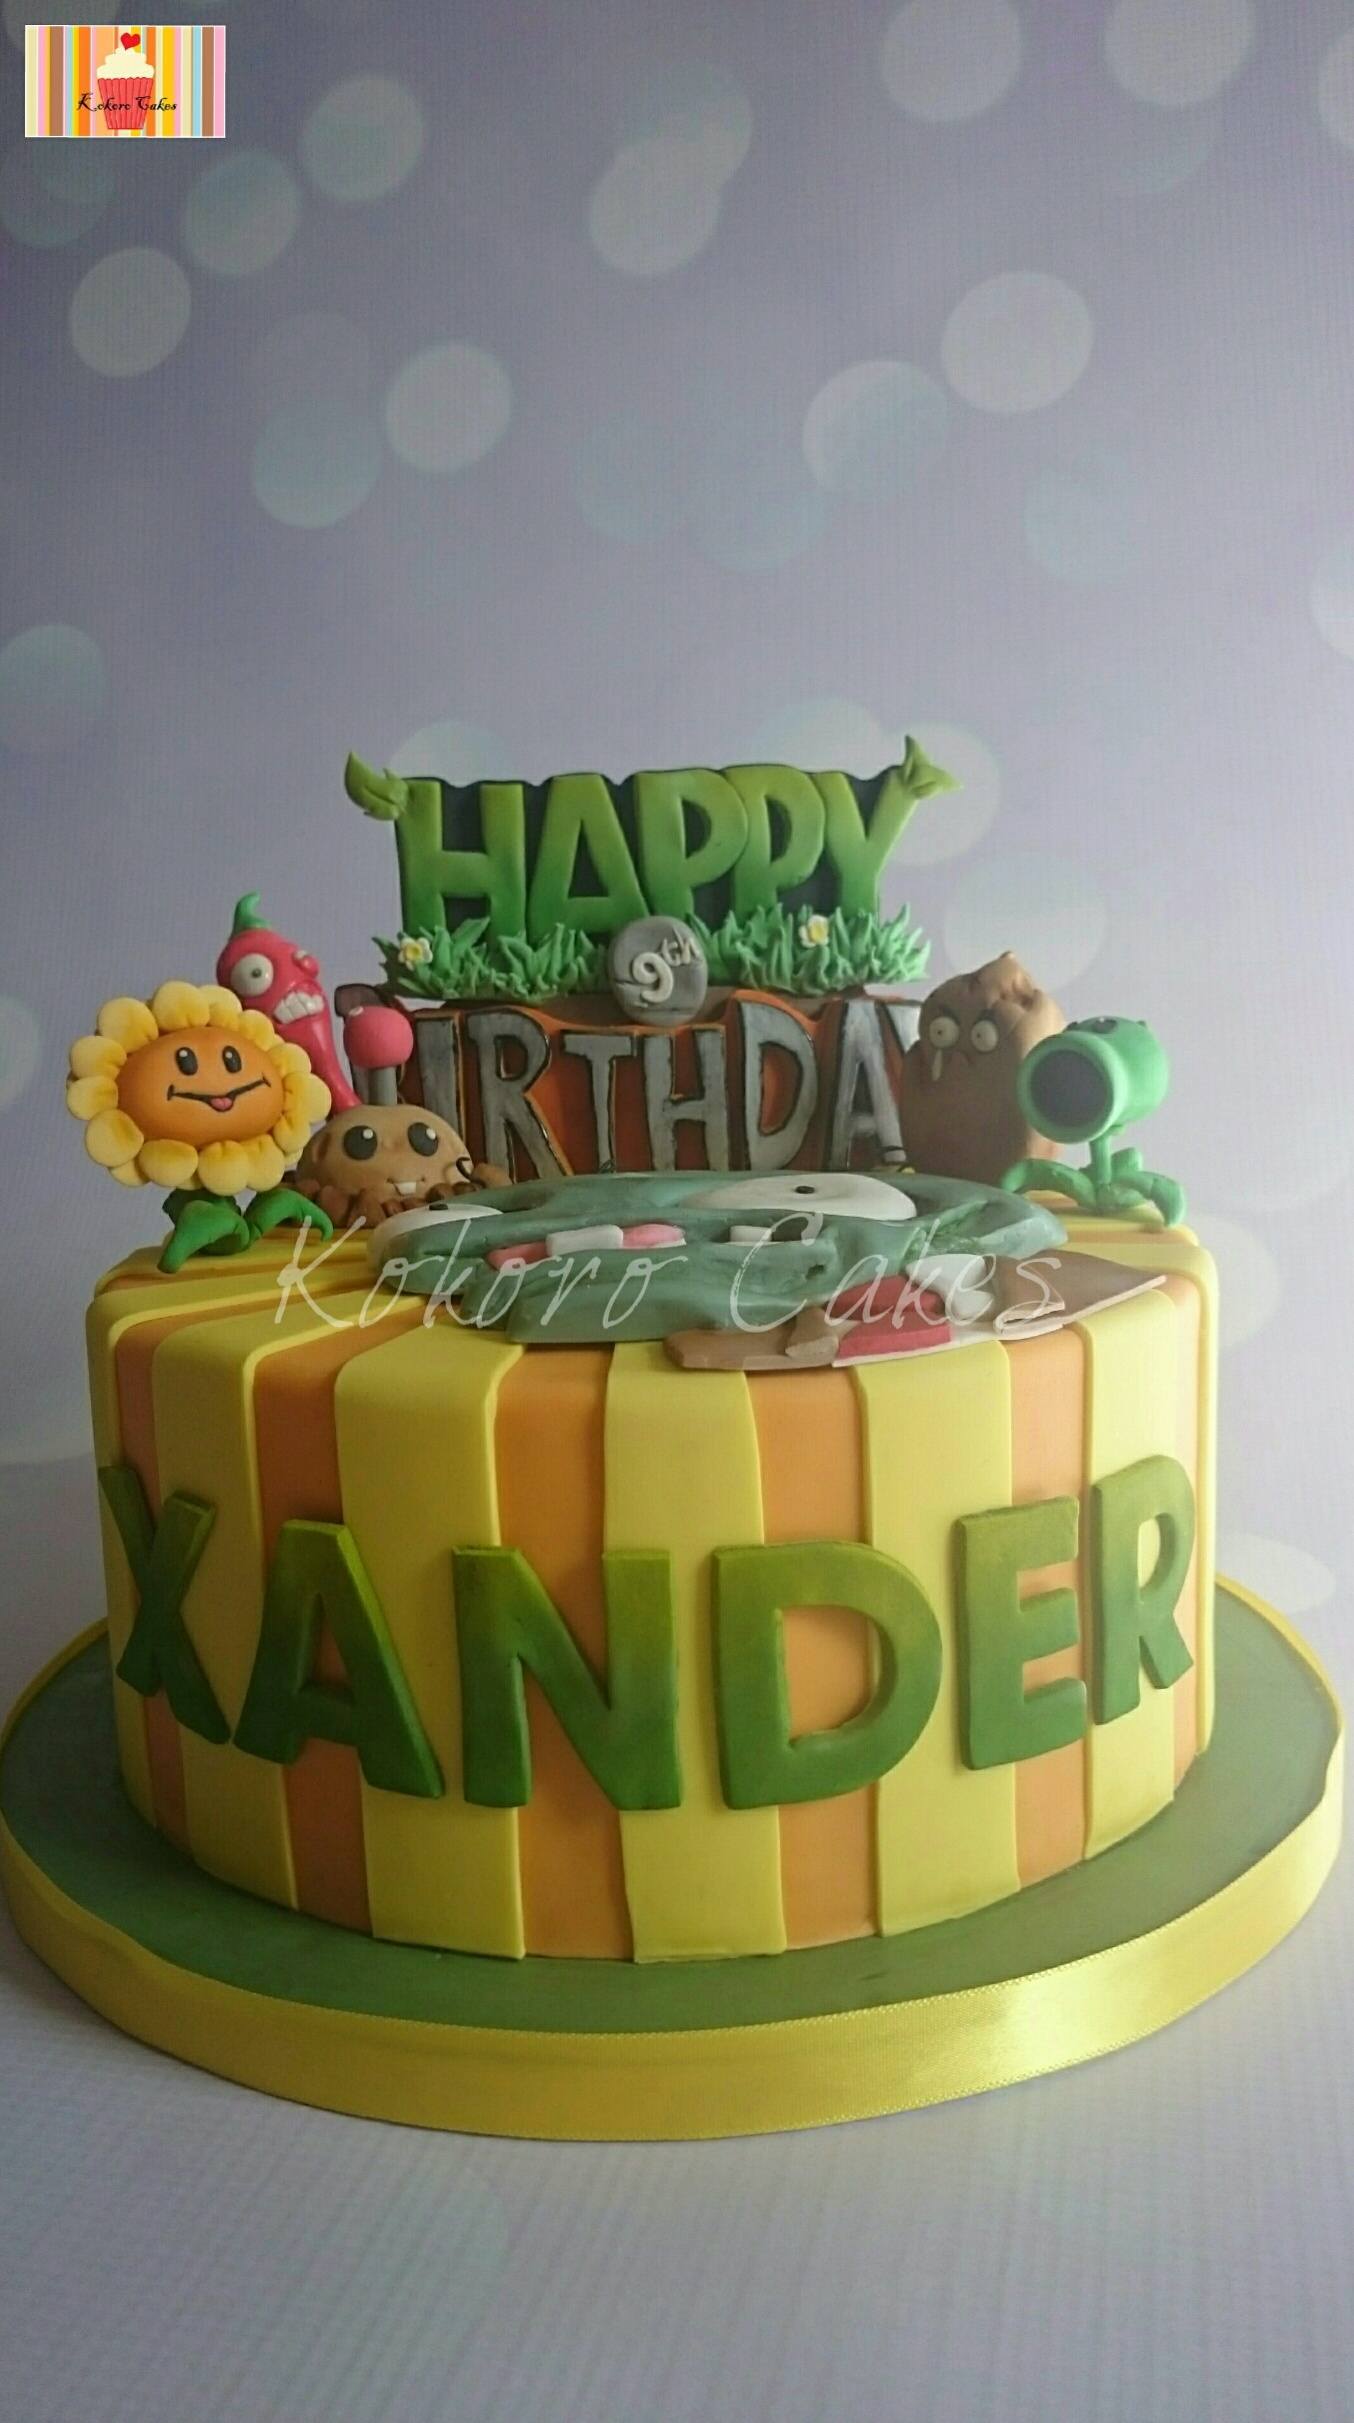 Plants Vs Zombies Themed Cake - CakeCentral.com